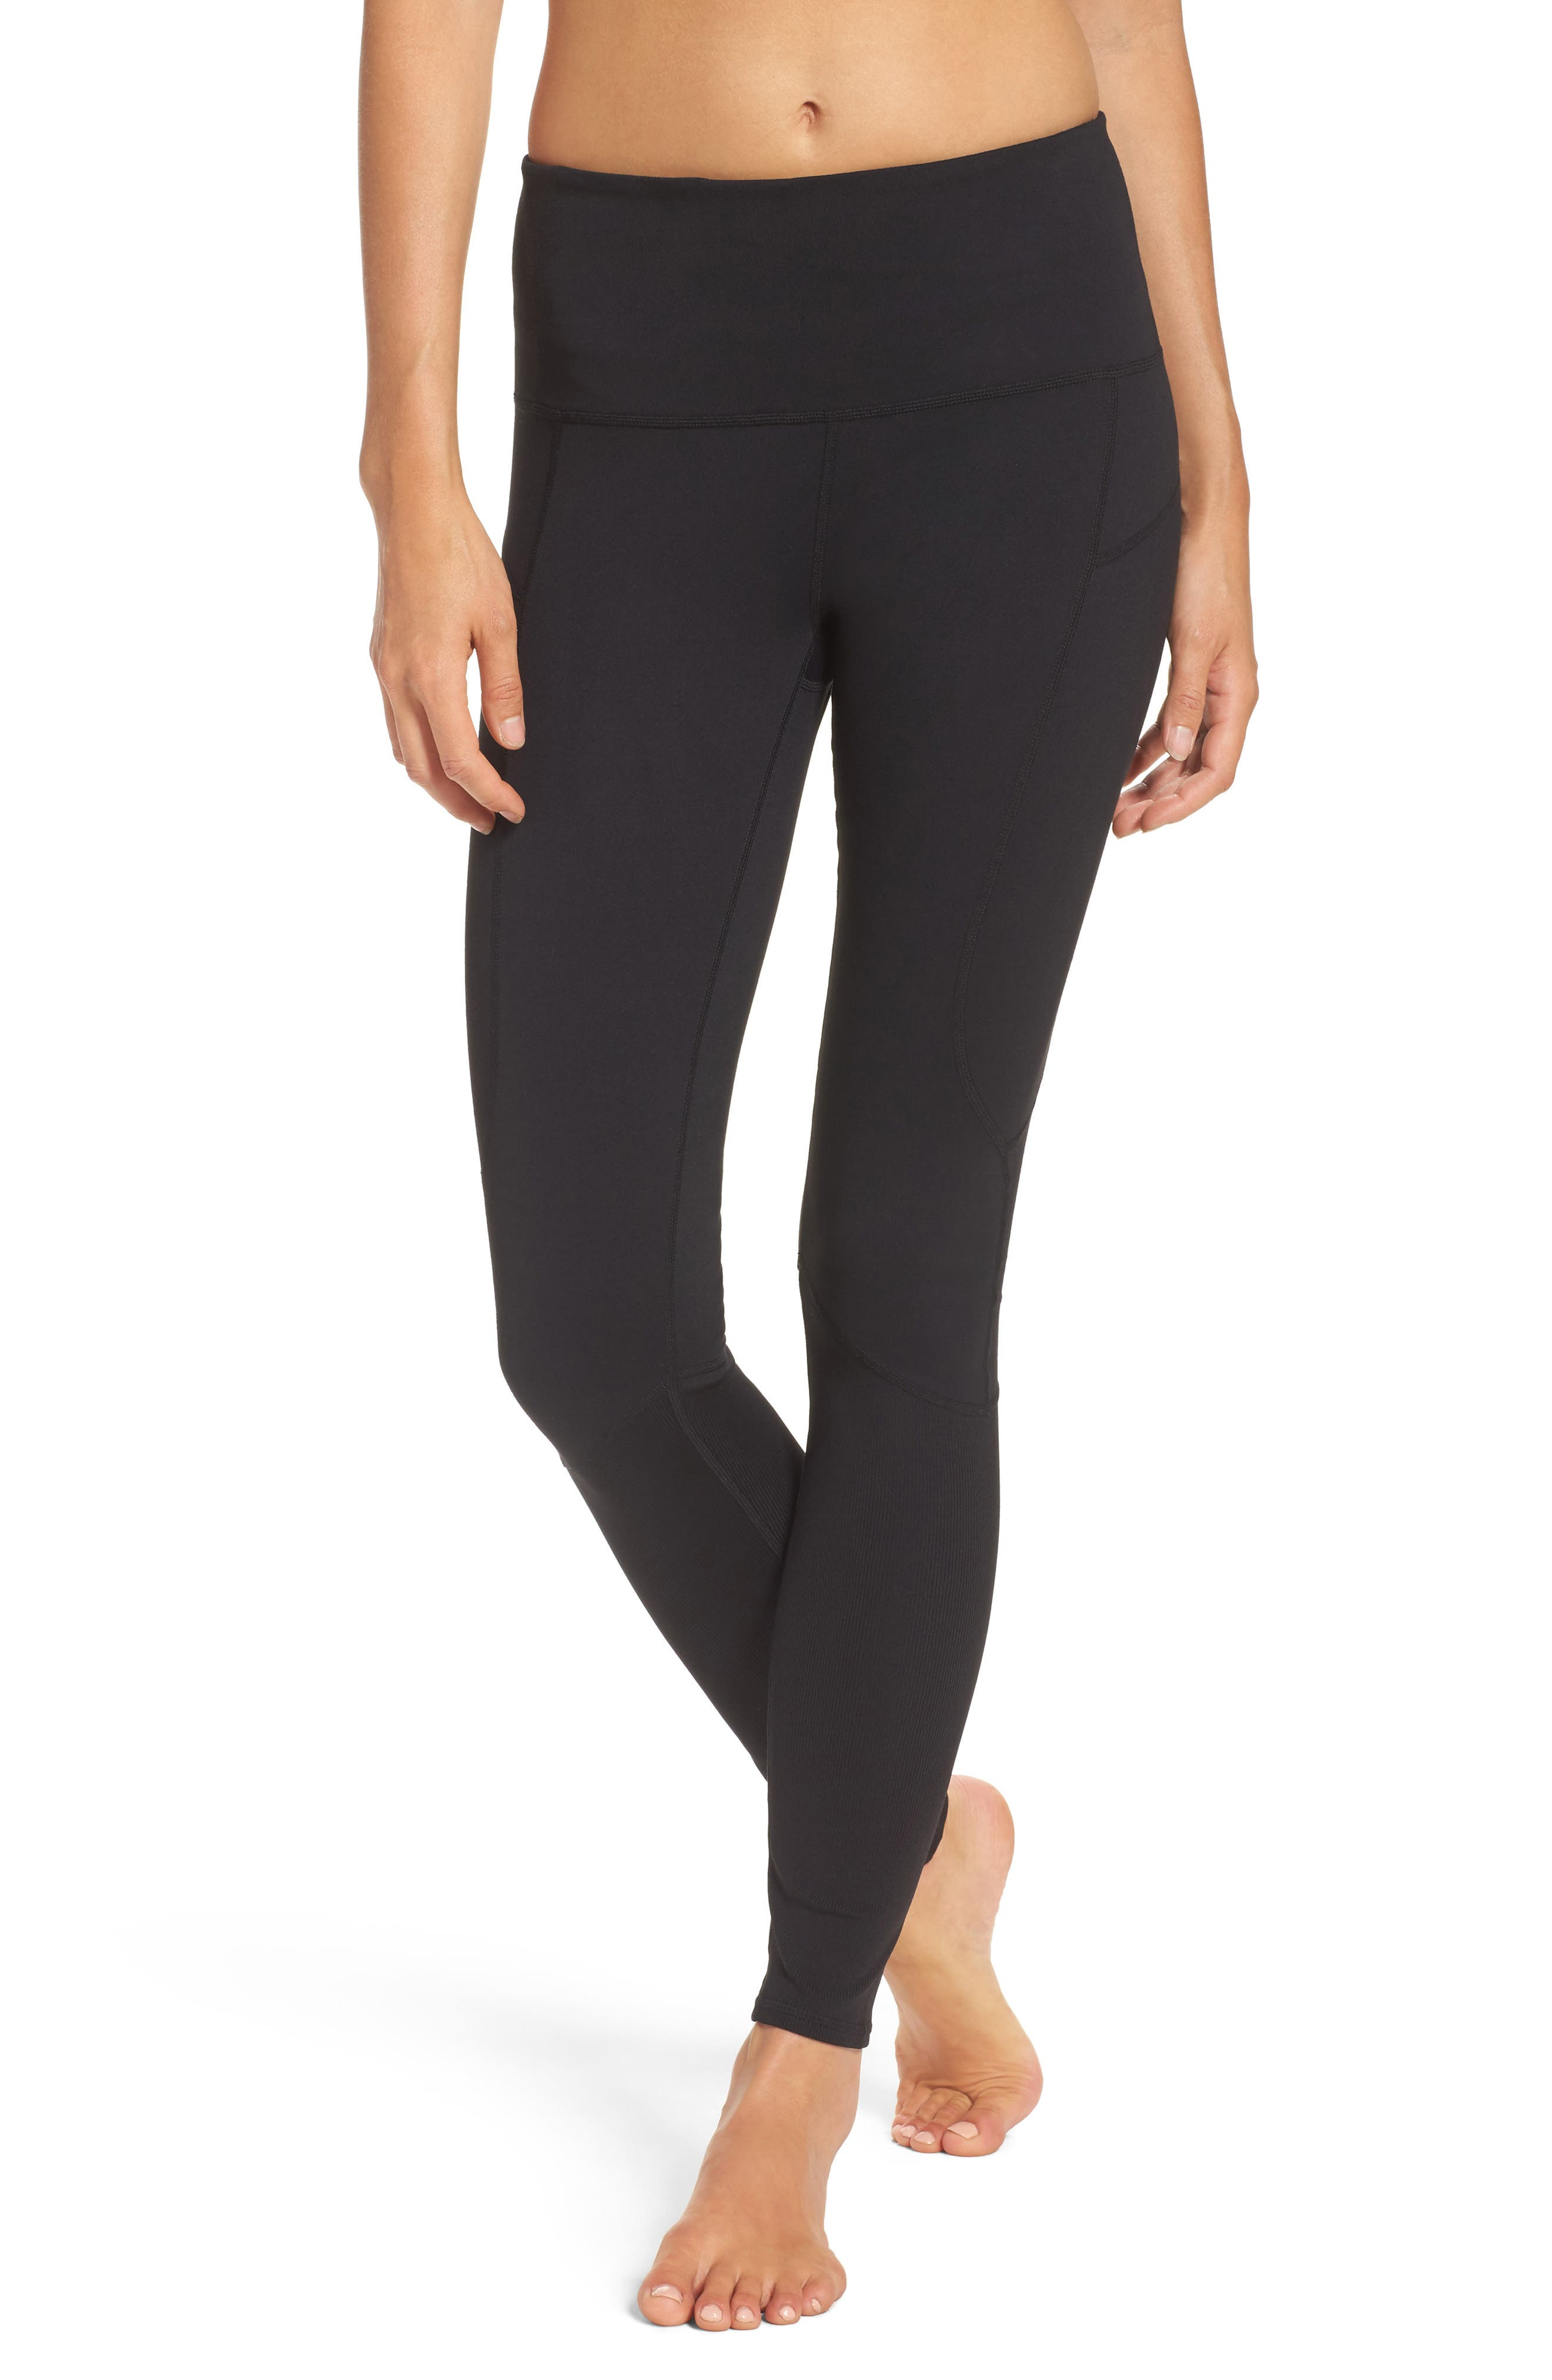 Zella Double Dare High Waist Leggings